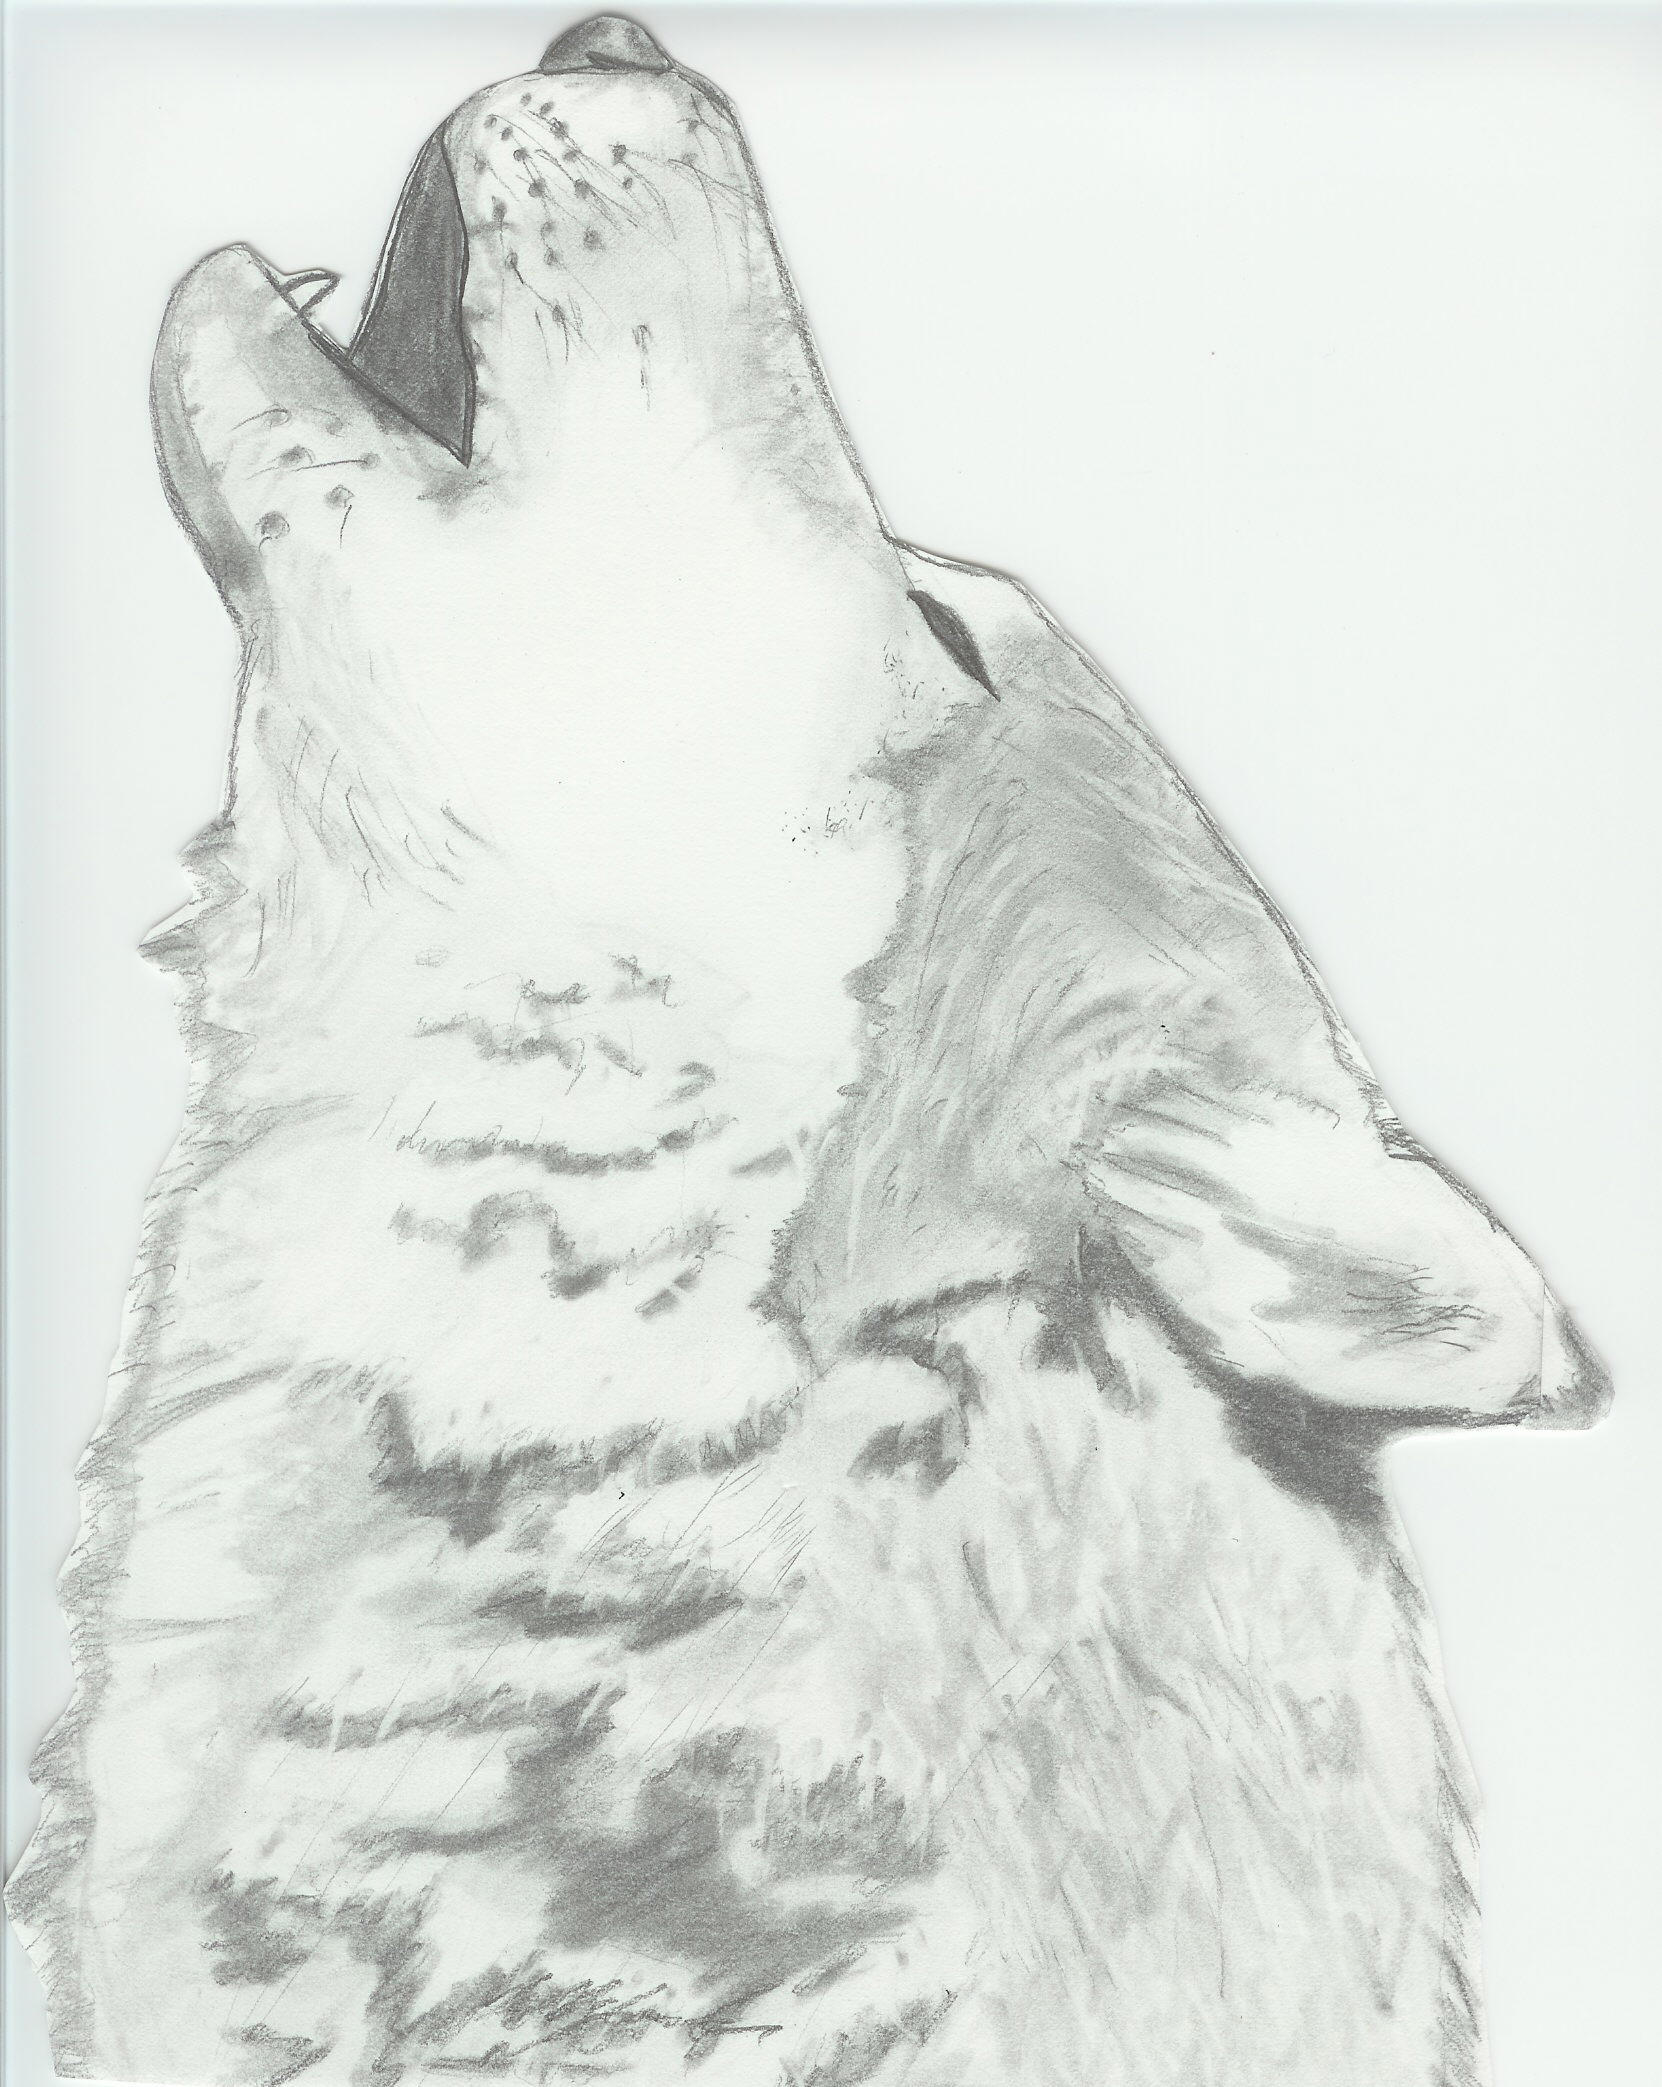 Howling Wolf By Seaofice